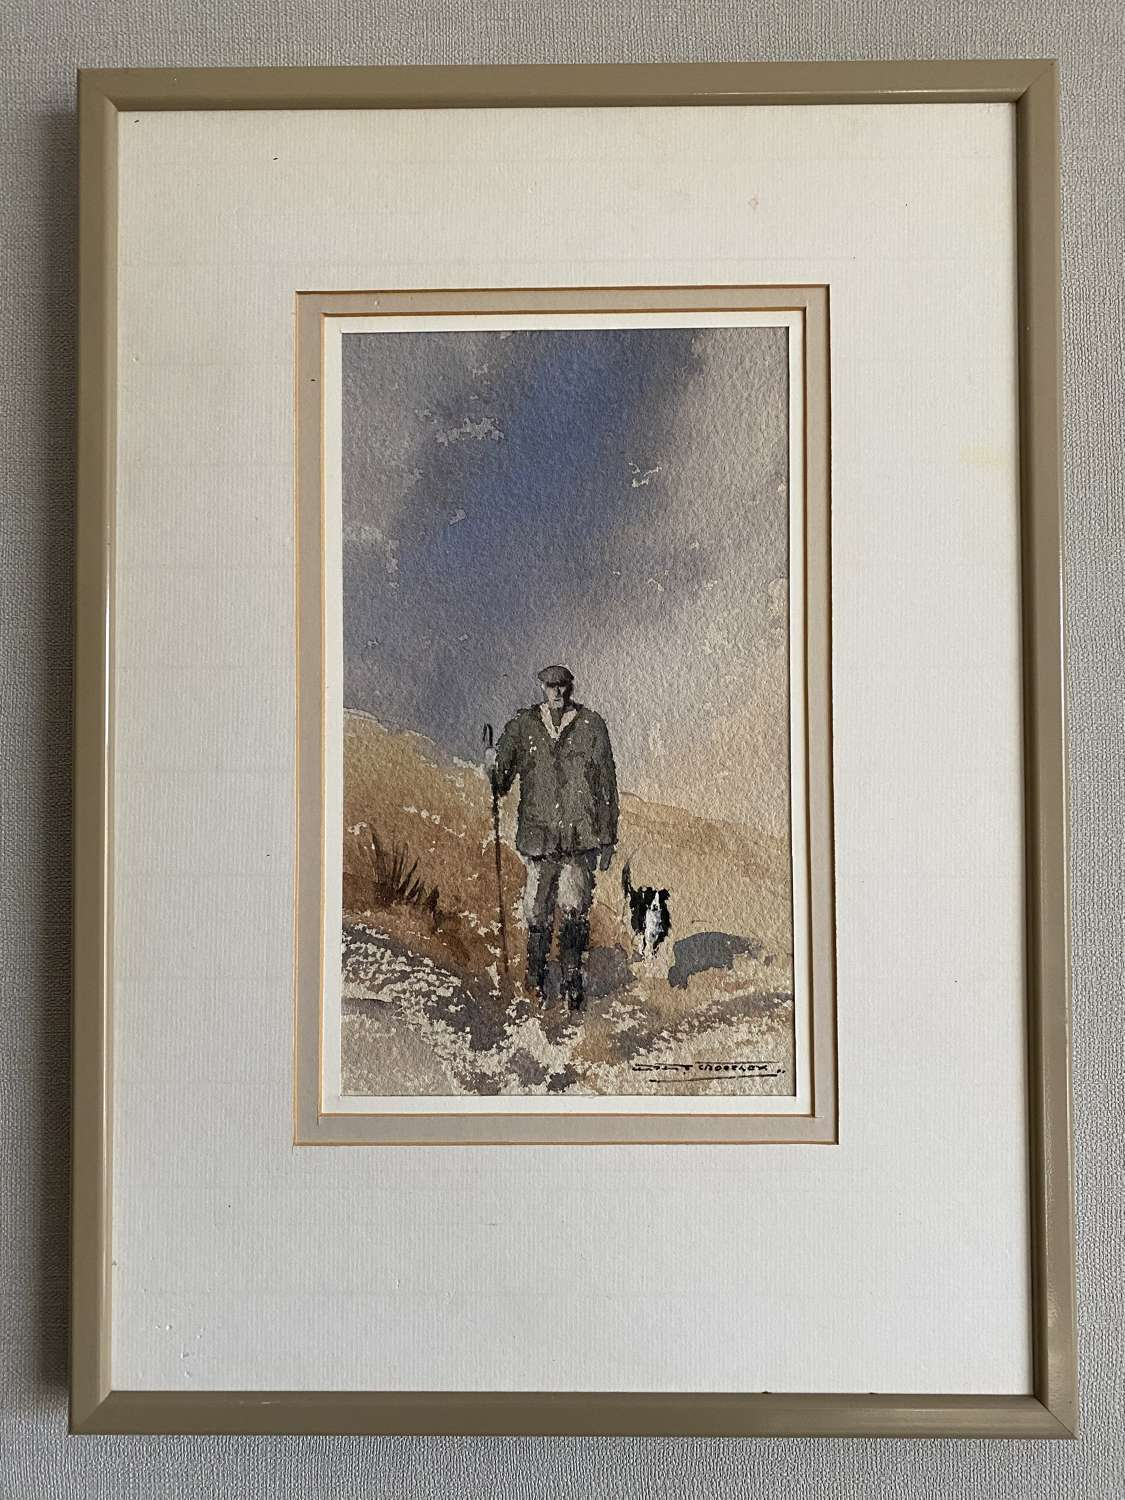 Framed Donald Crossley Watercolour